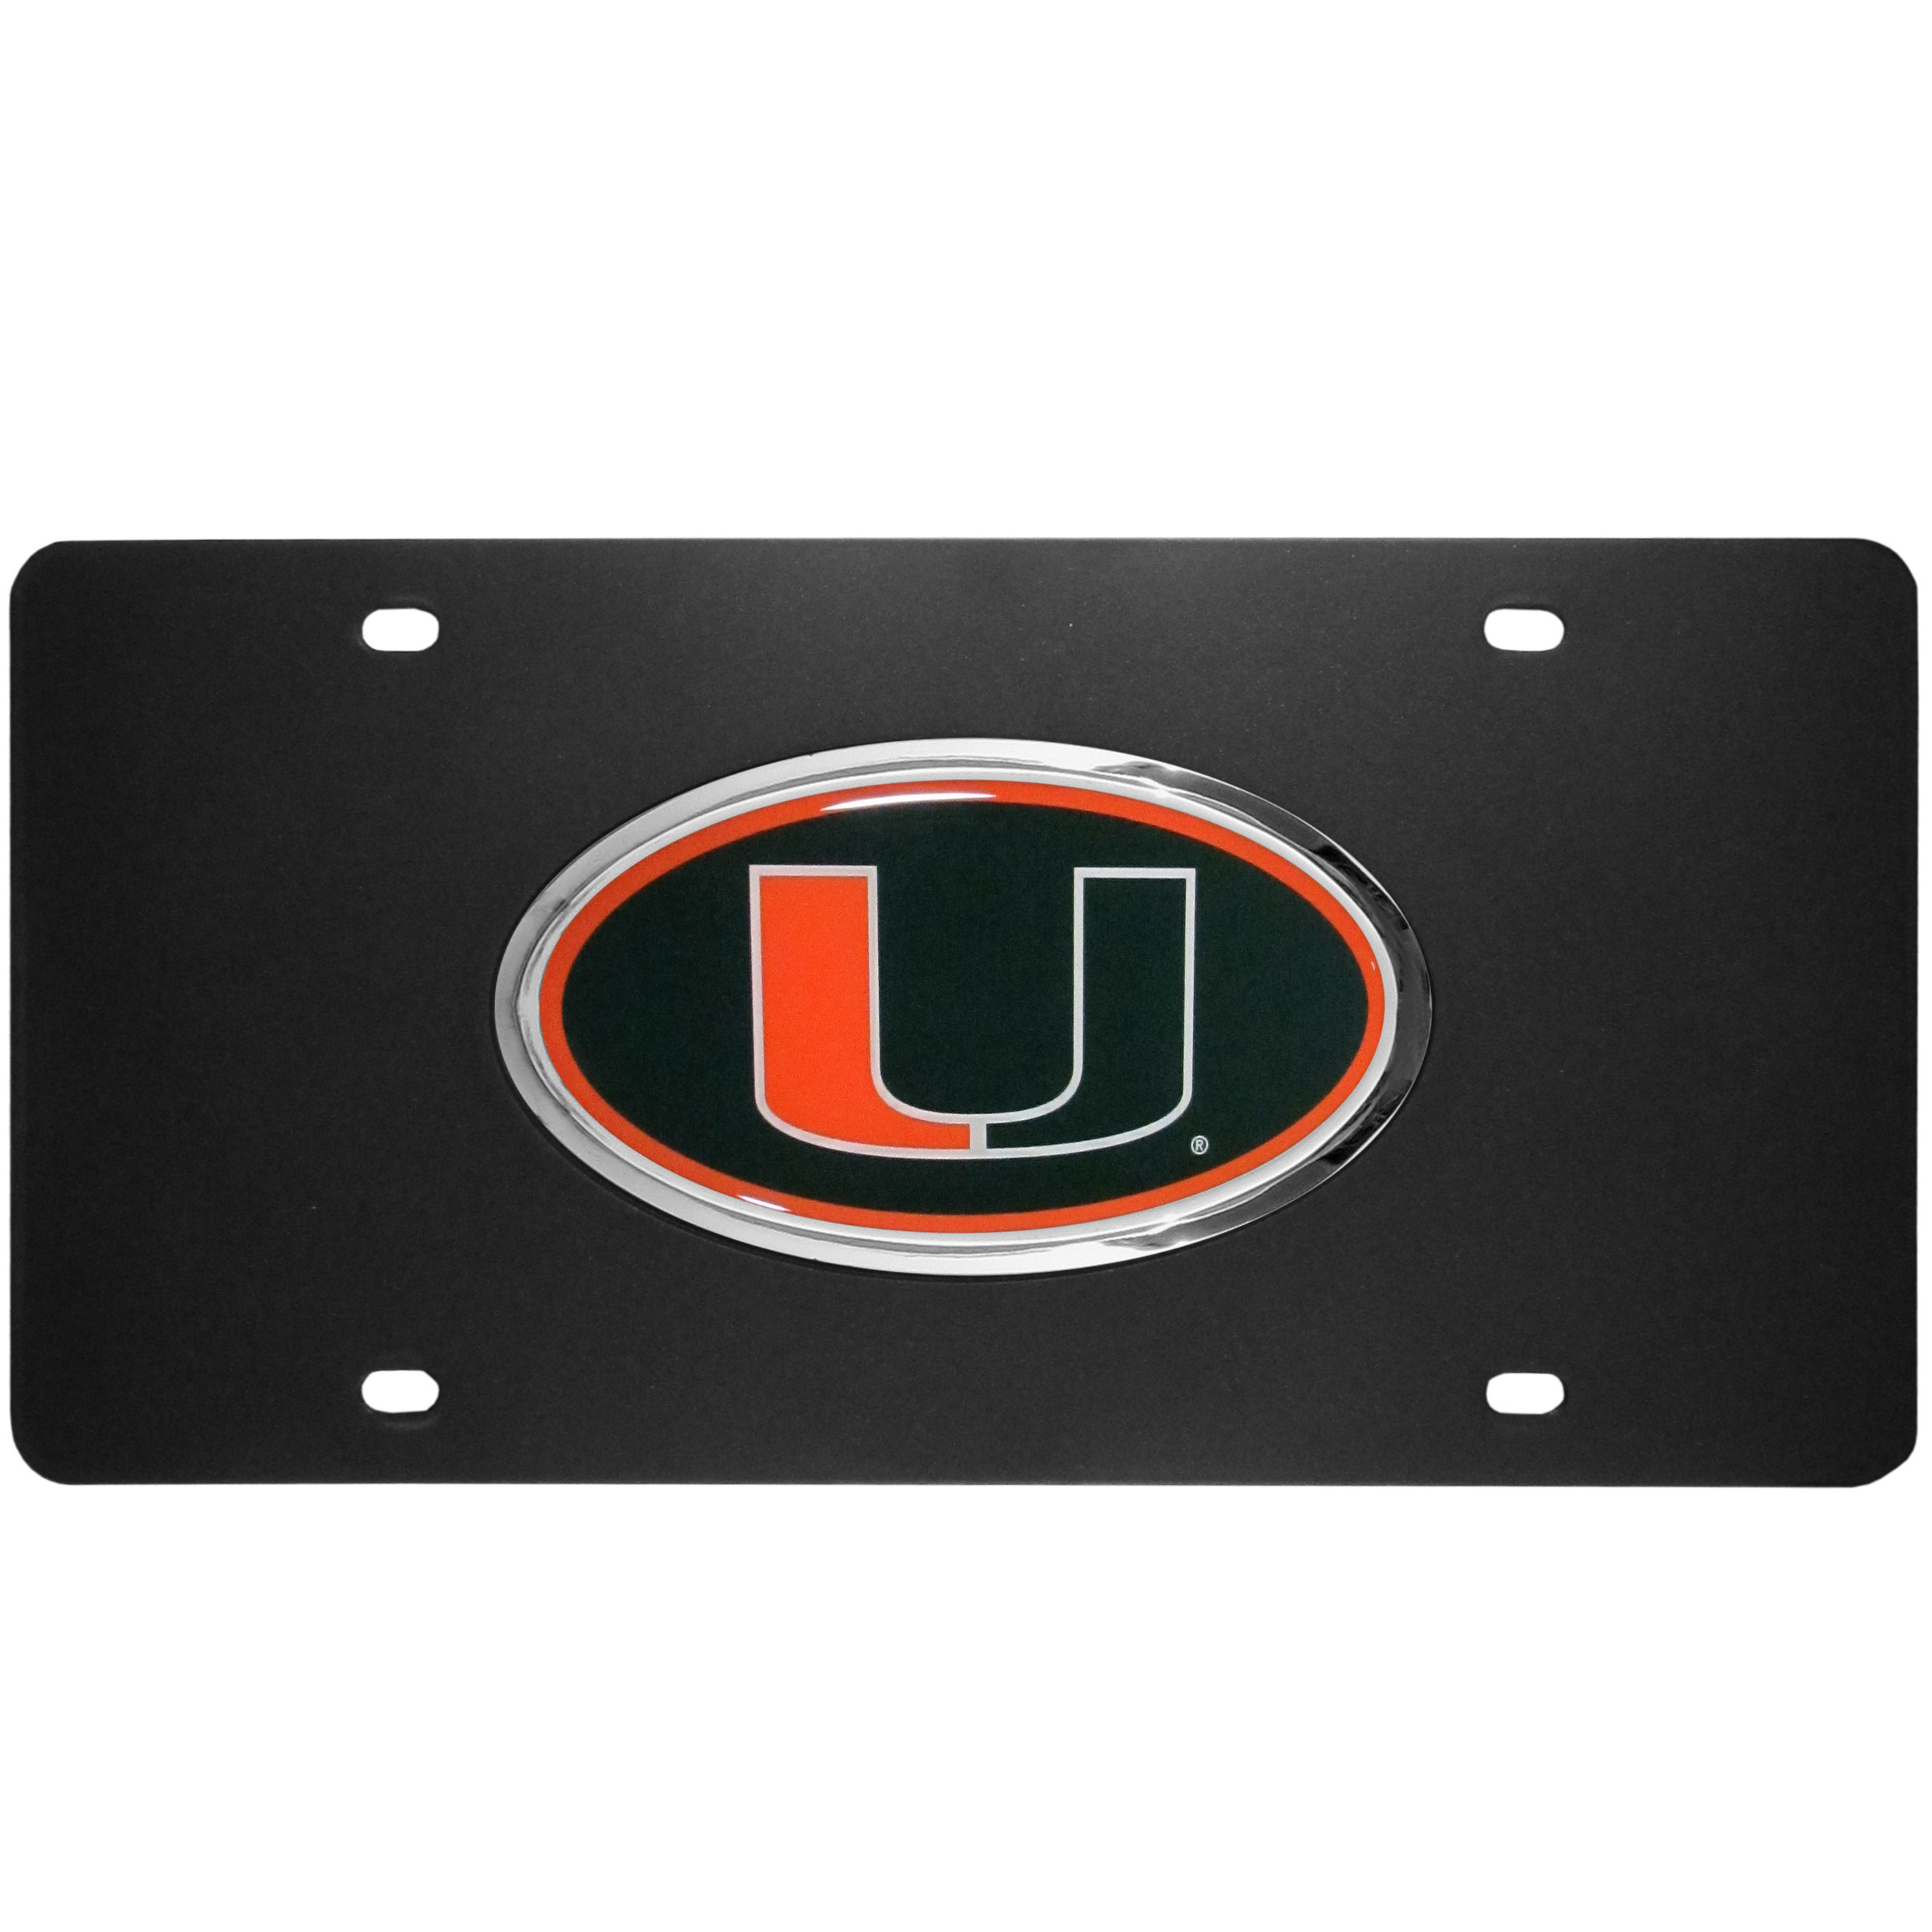 Miami Hurricanes Acrylic License Plate - Our Miami Hurricanes acrylic license plate is a step above the rest. It is made of thick, durable acrylic with a matte black finish and raised chrome saddle for the extra large team emblem.